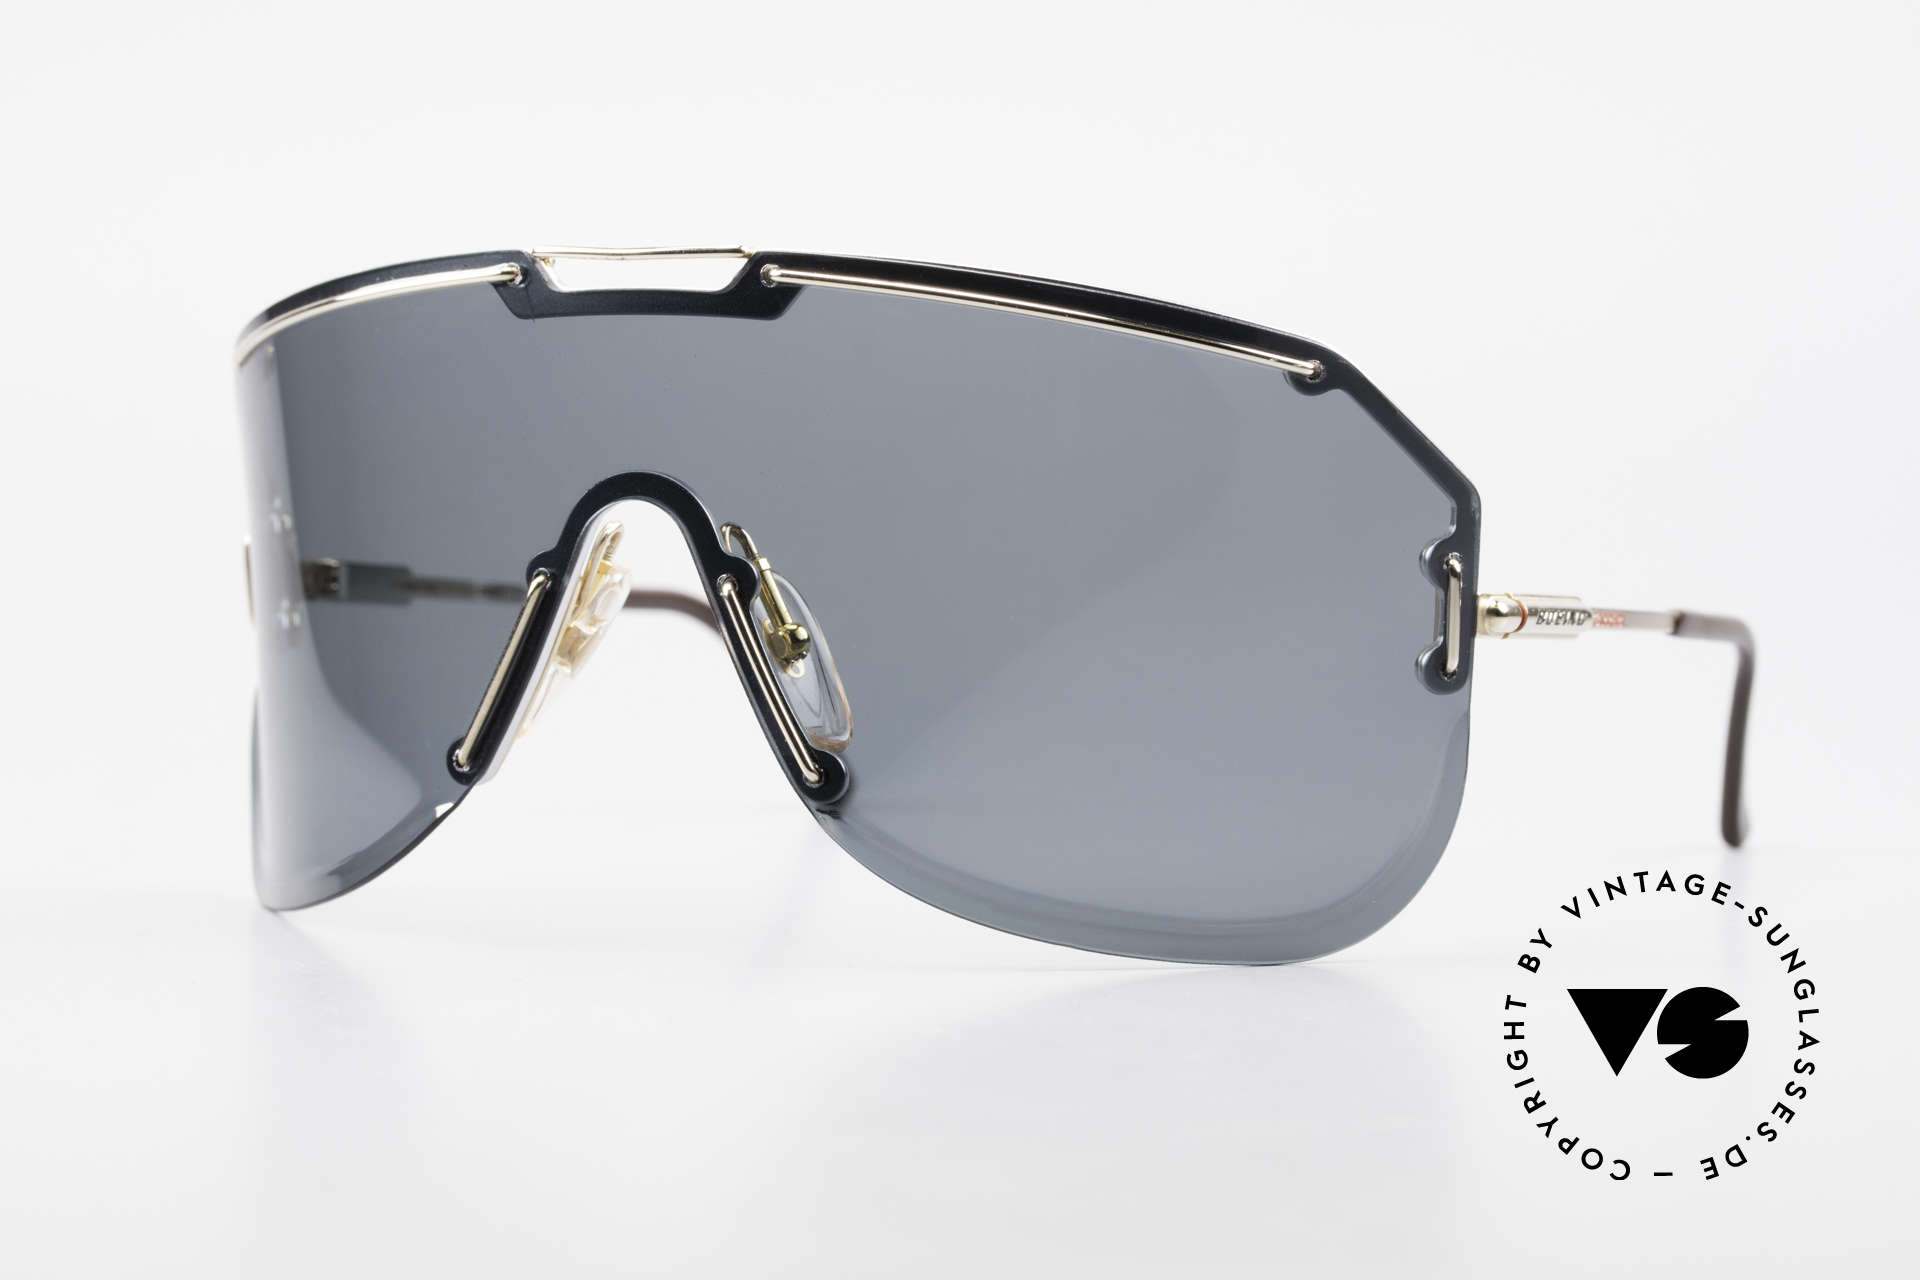 Boeing 5703 80's Luxury Pilots Sunglasses, unbelievable rare model of the 80's BOEING Collection, Made for Men